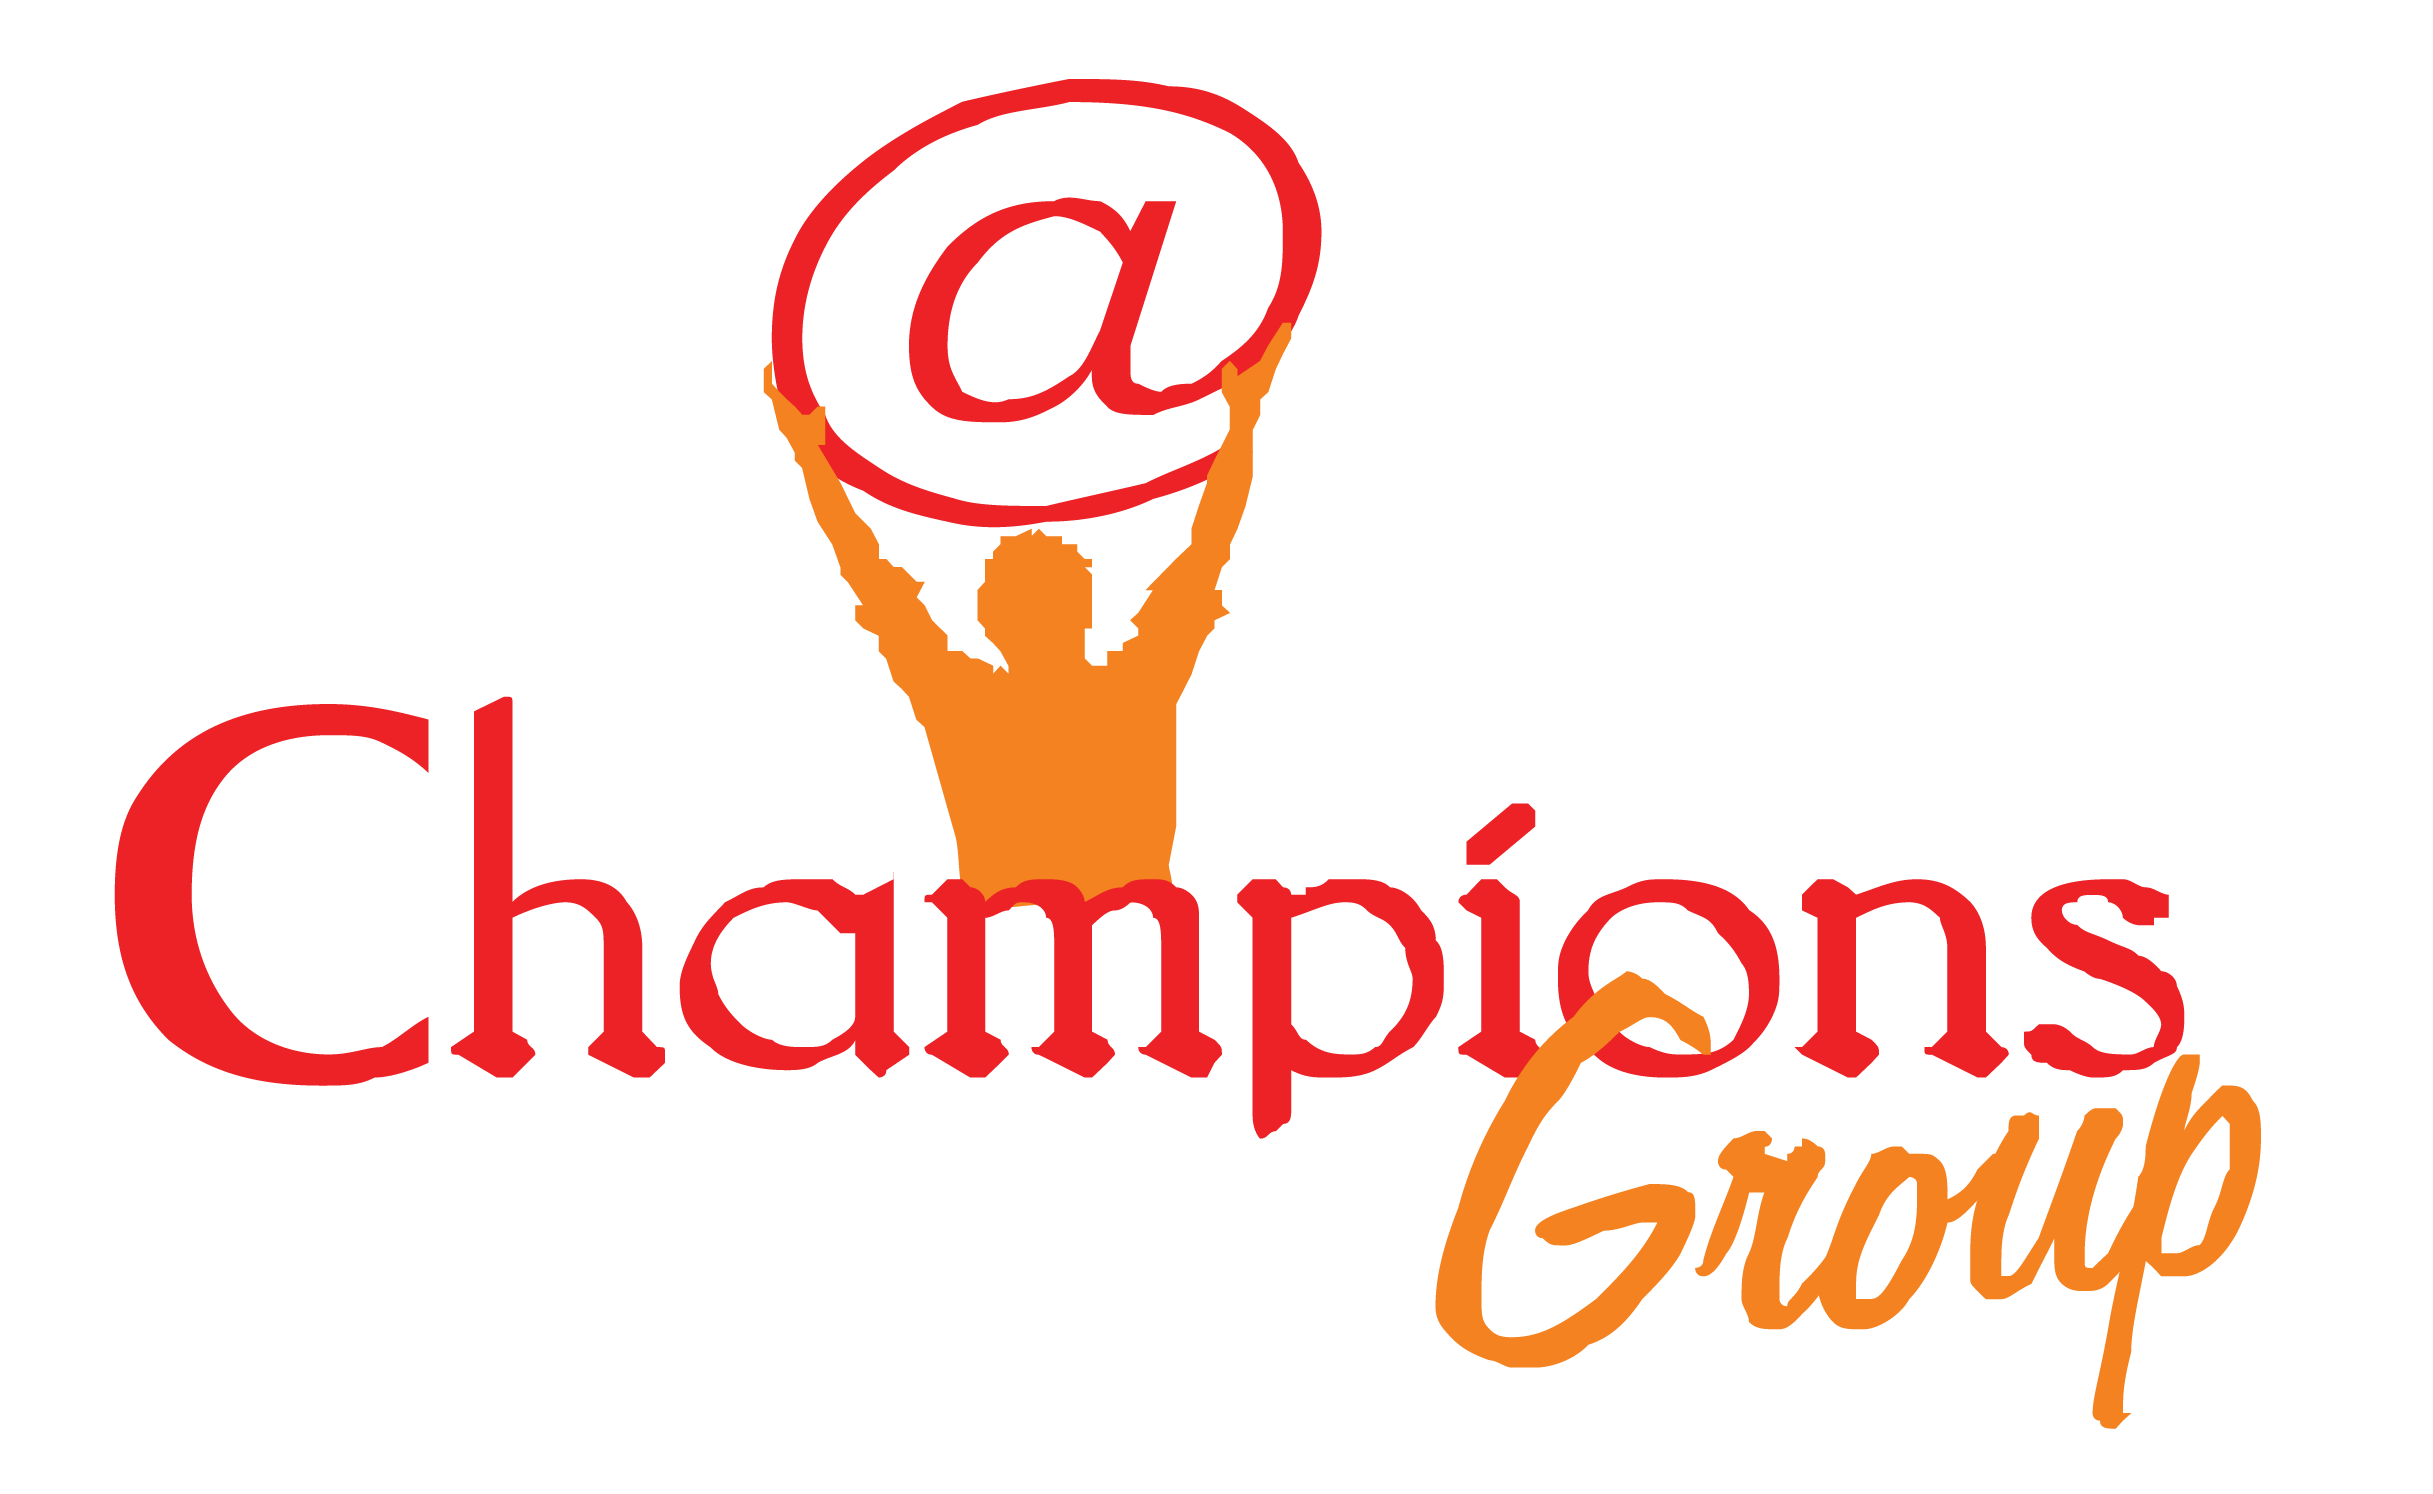 Champions group please click here to download the logo altavistaventures Gallery